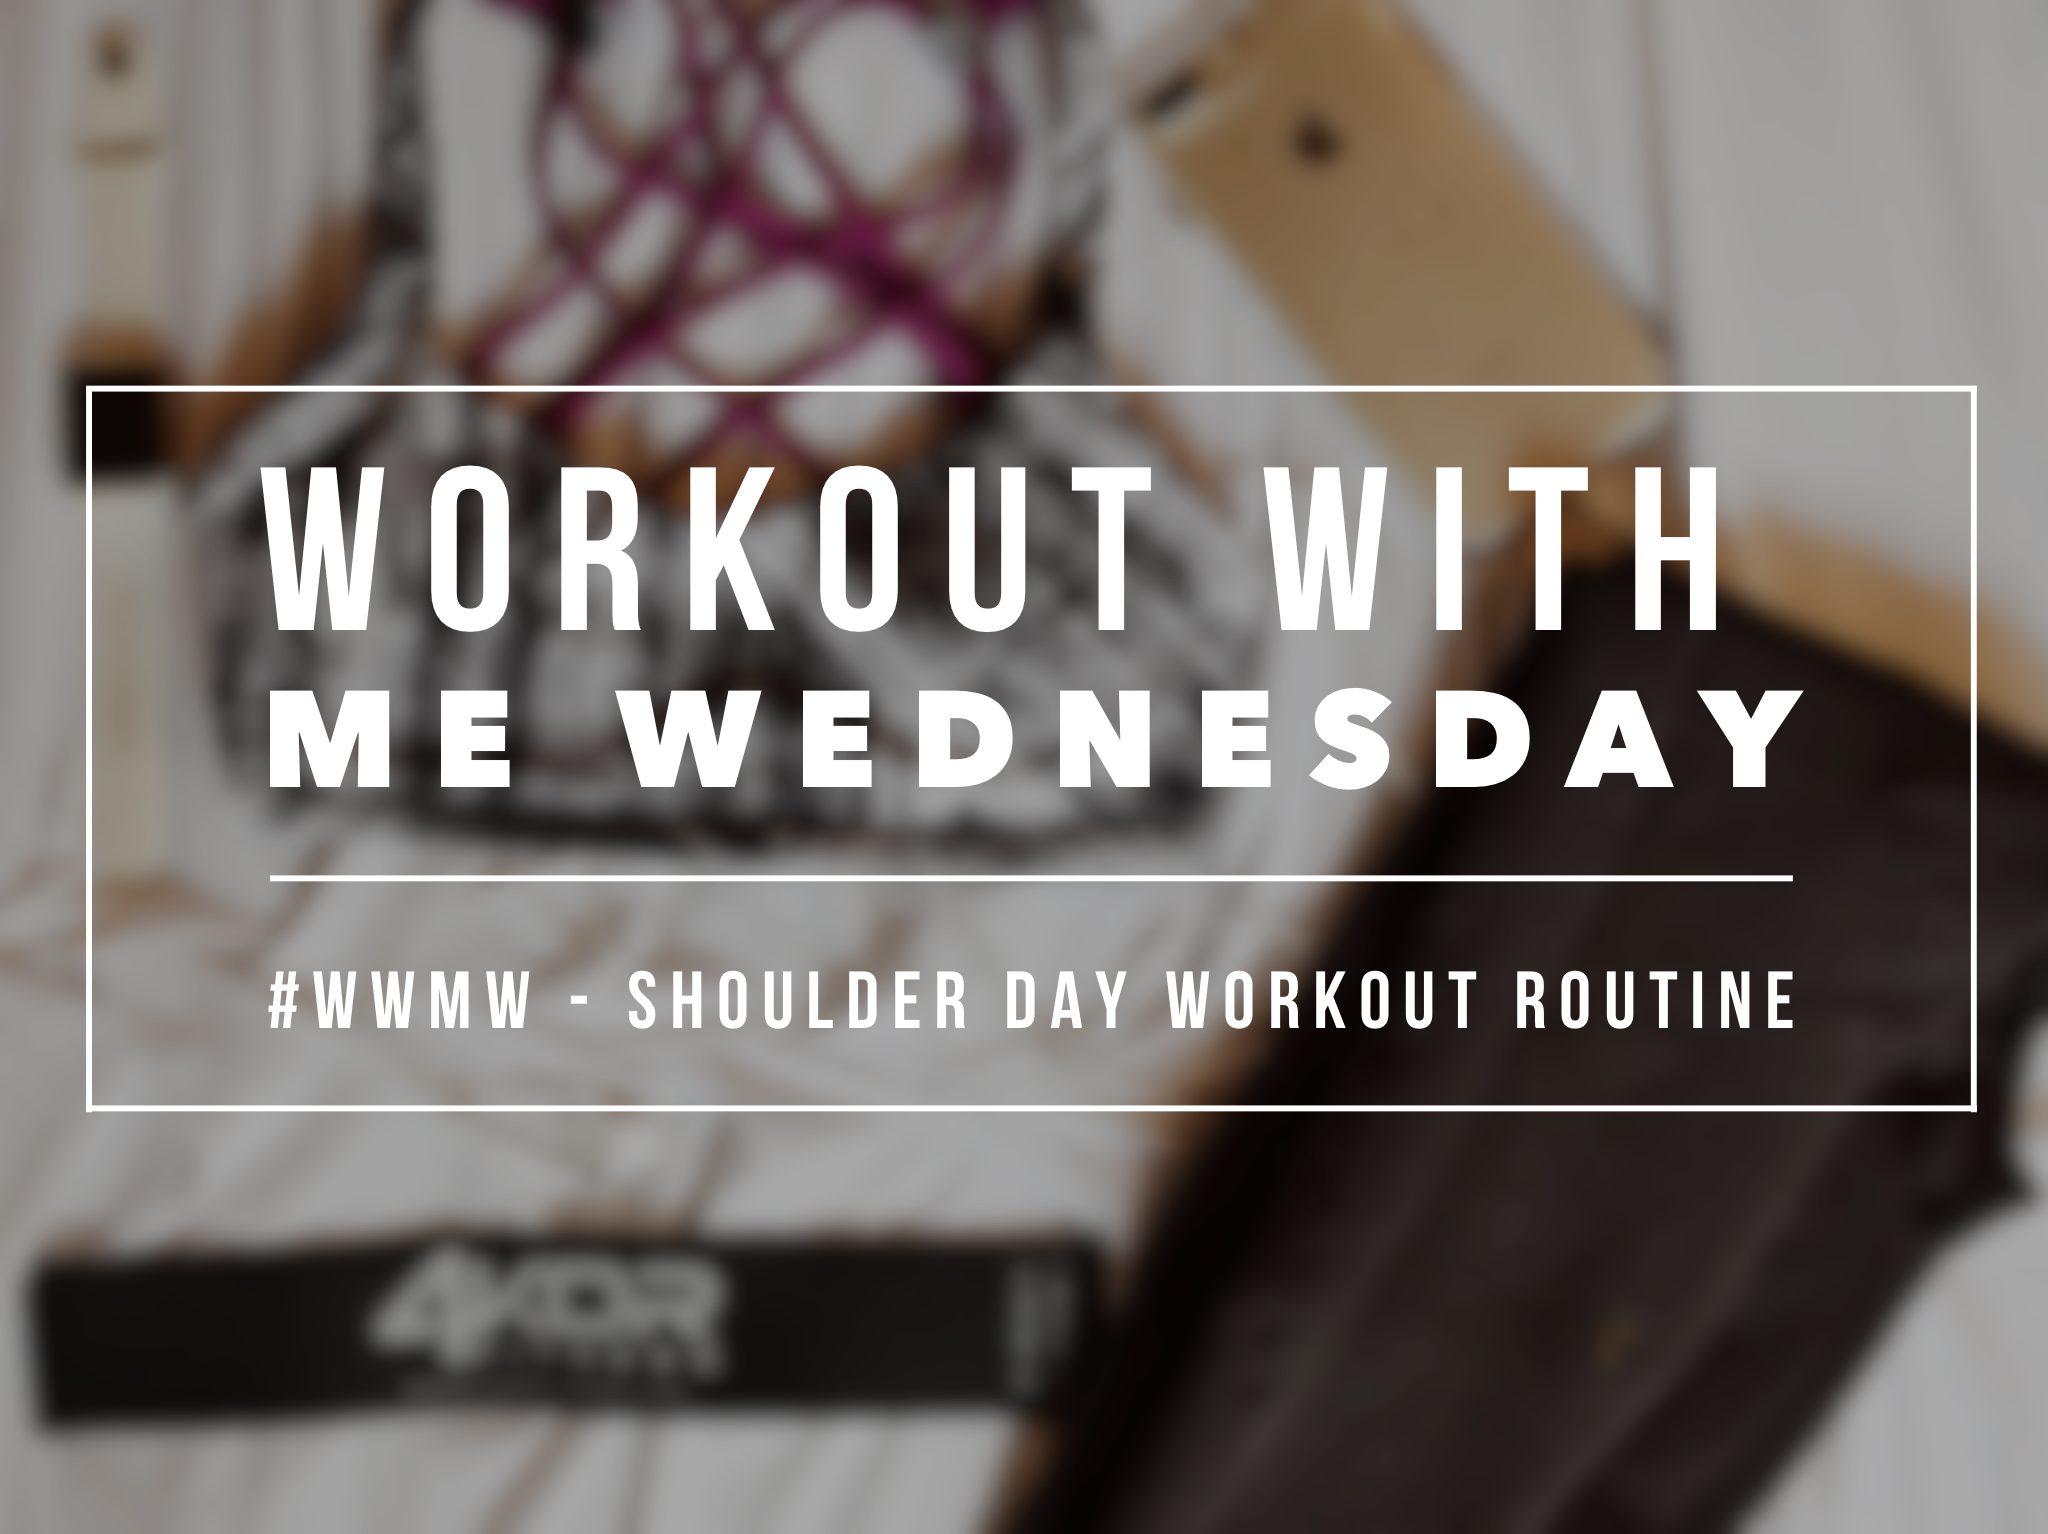 Shoulder Day Workout Routine